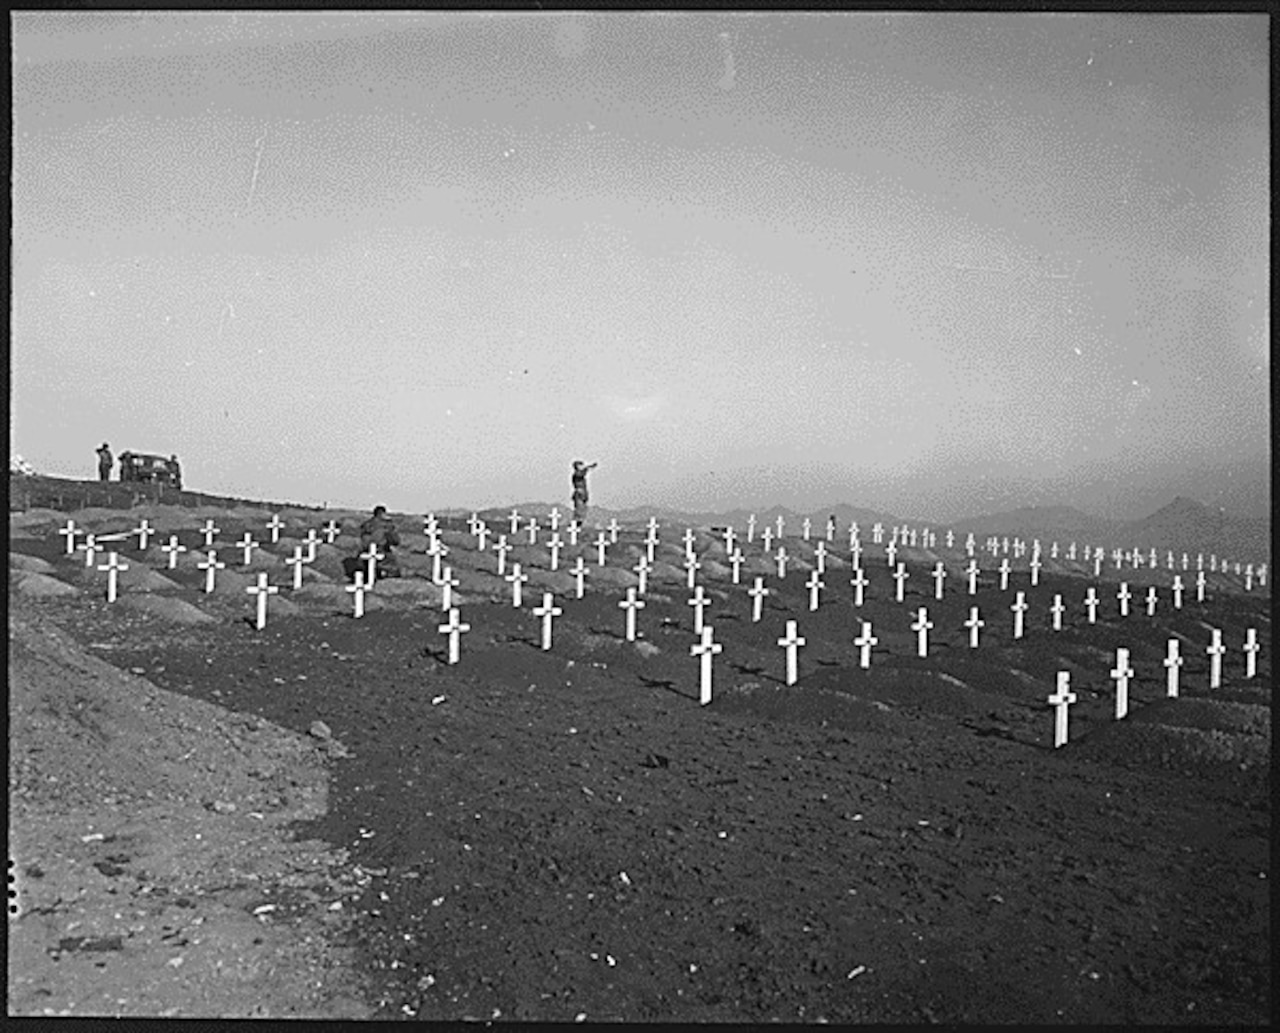 A bugler stands in the distance blowing his bugle in the direction of several rows of crosses at freshly dug graves.